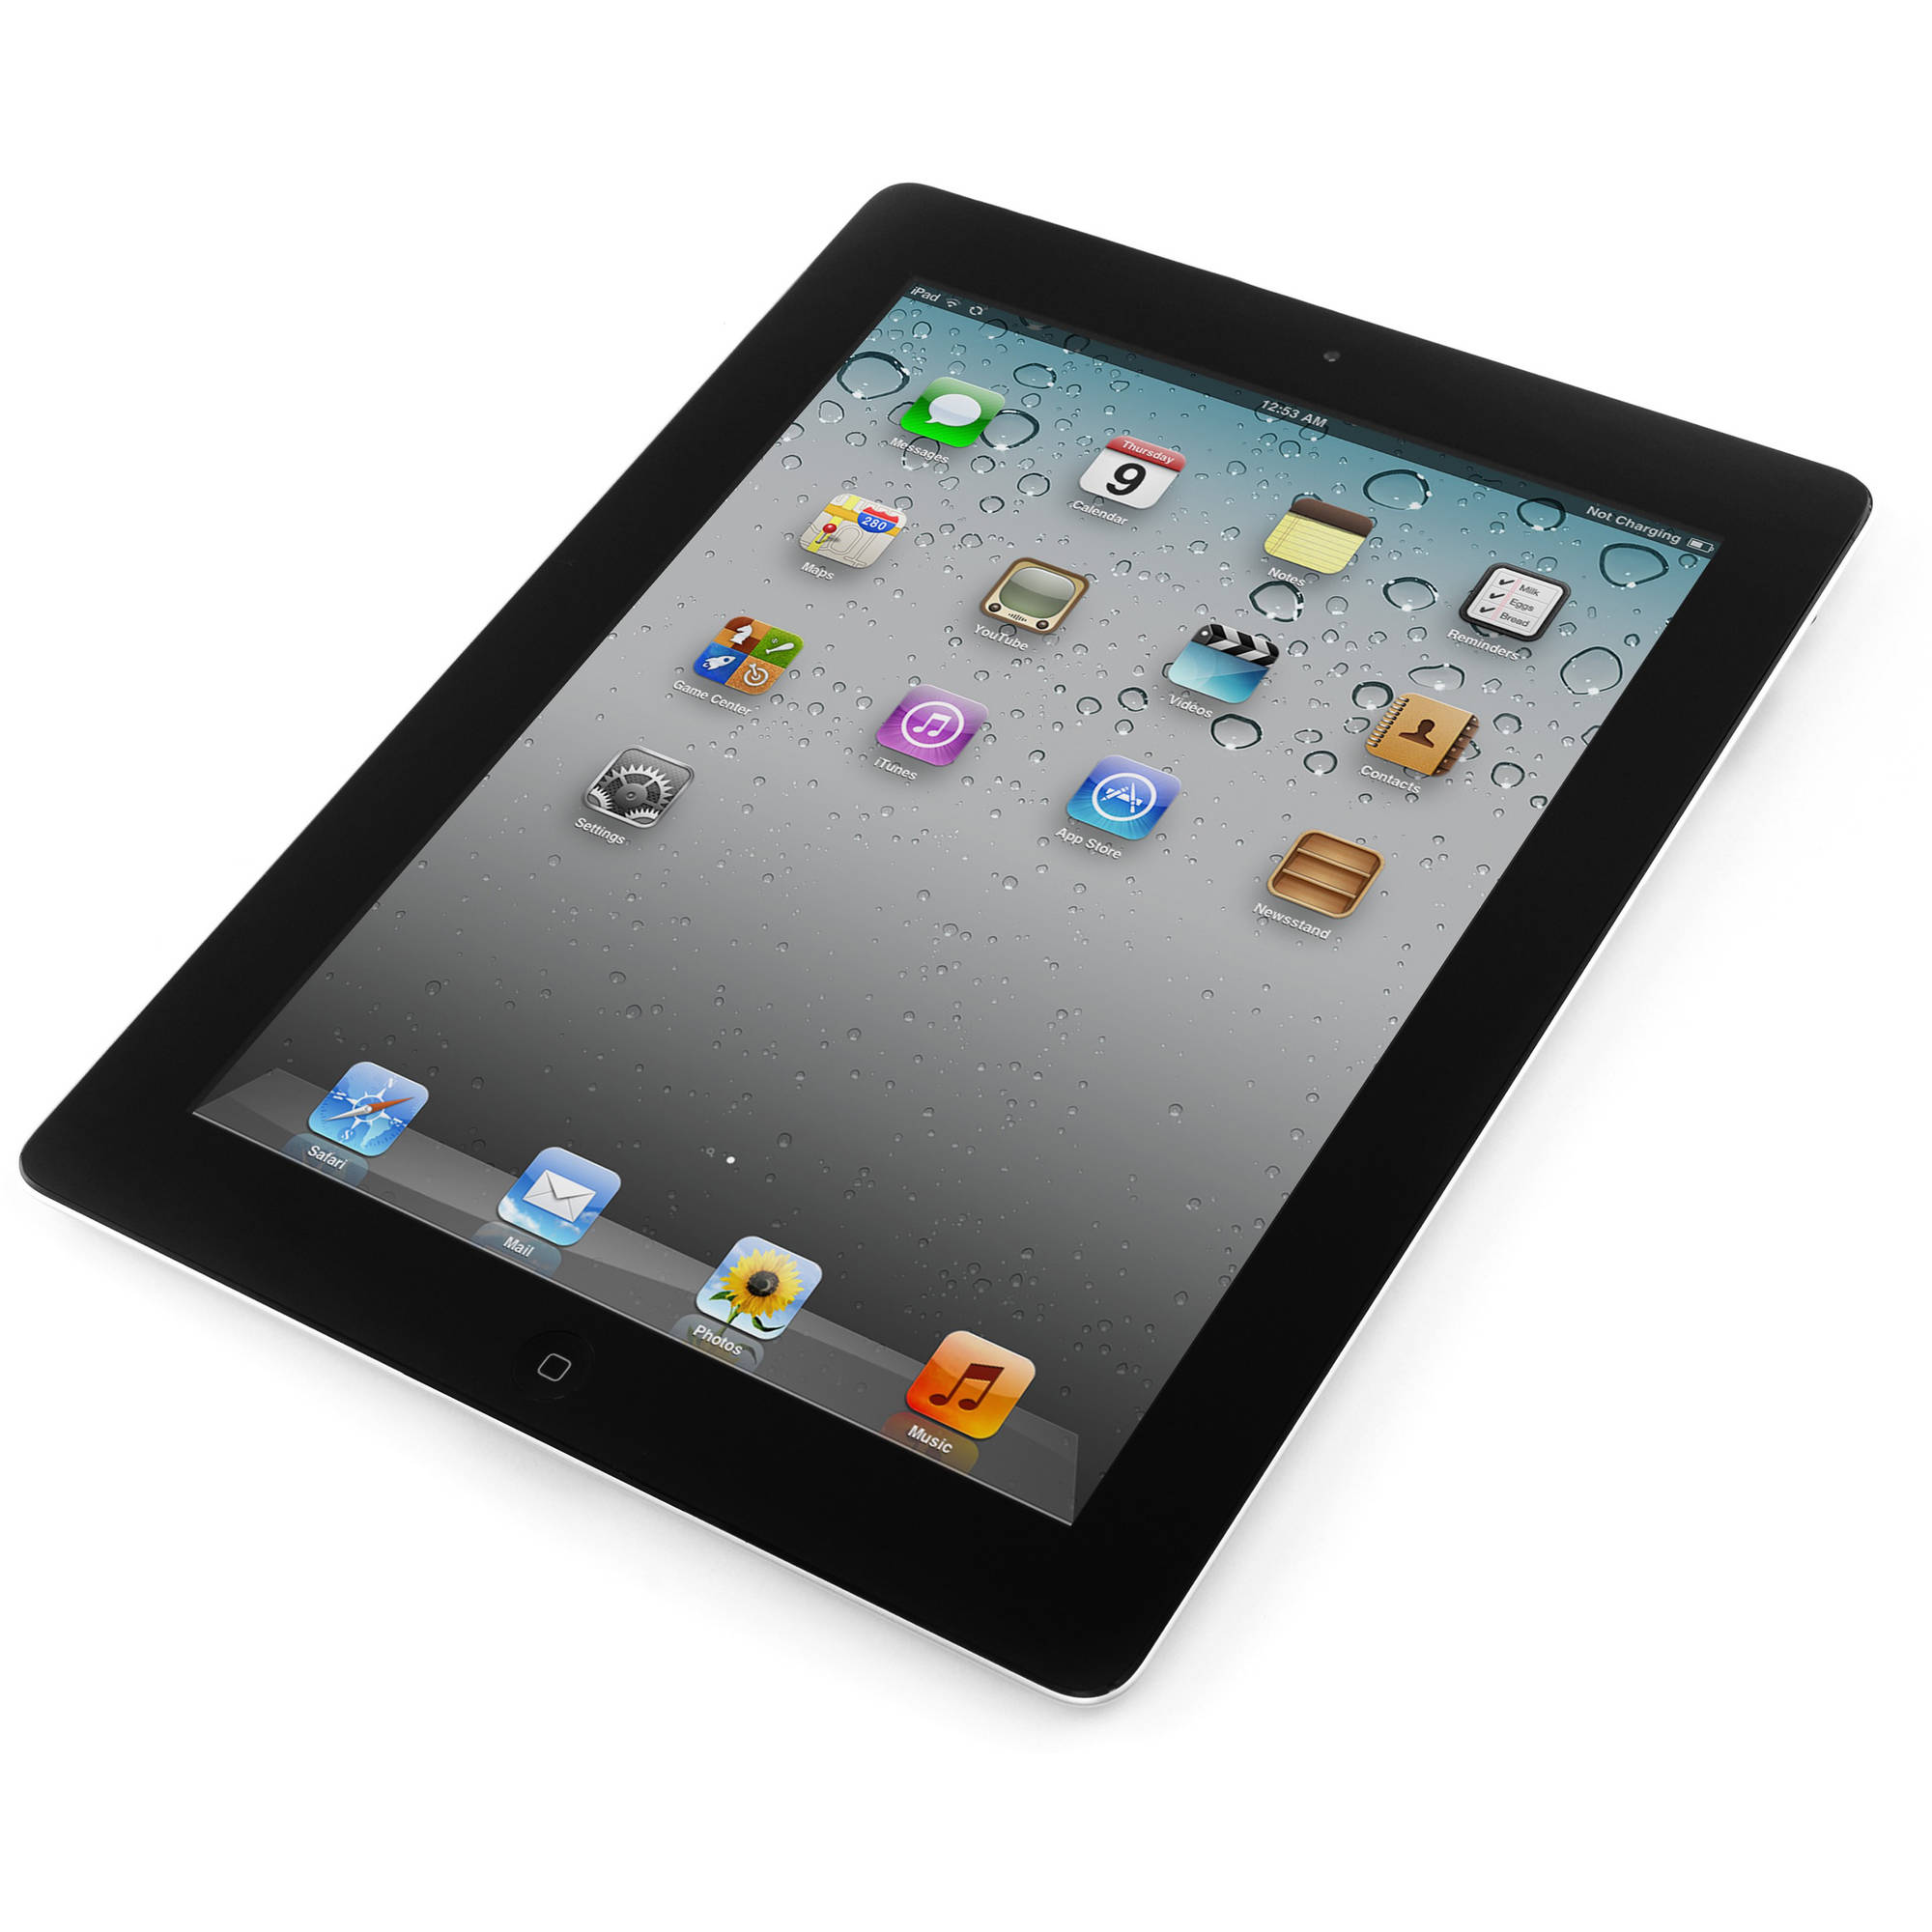 Apple iPad 4 9.7-inch 16GB Wi-Fi, Black (Refurbished Grade A)